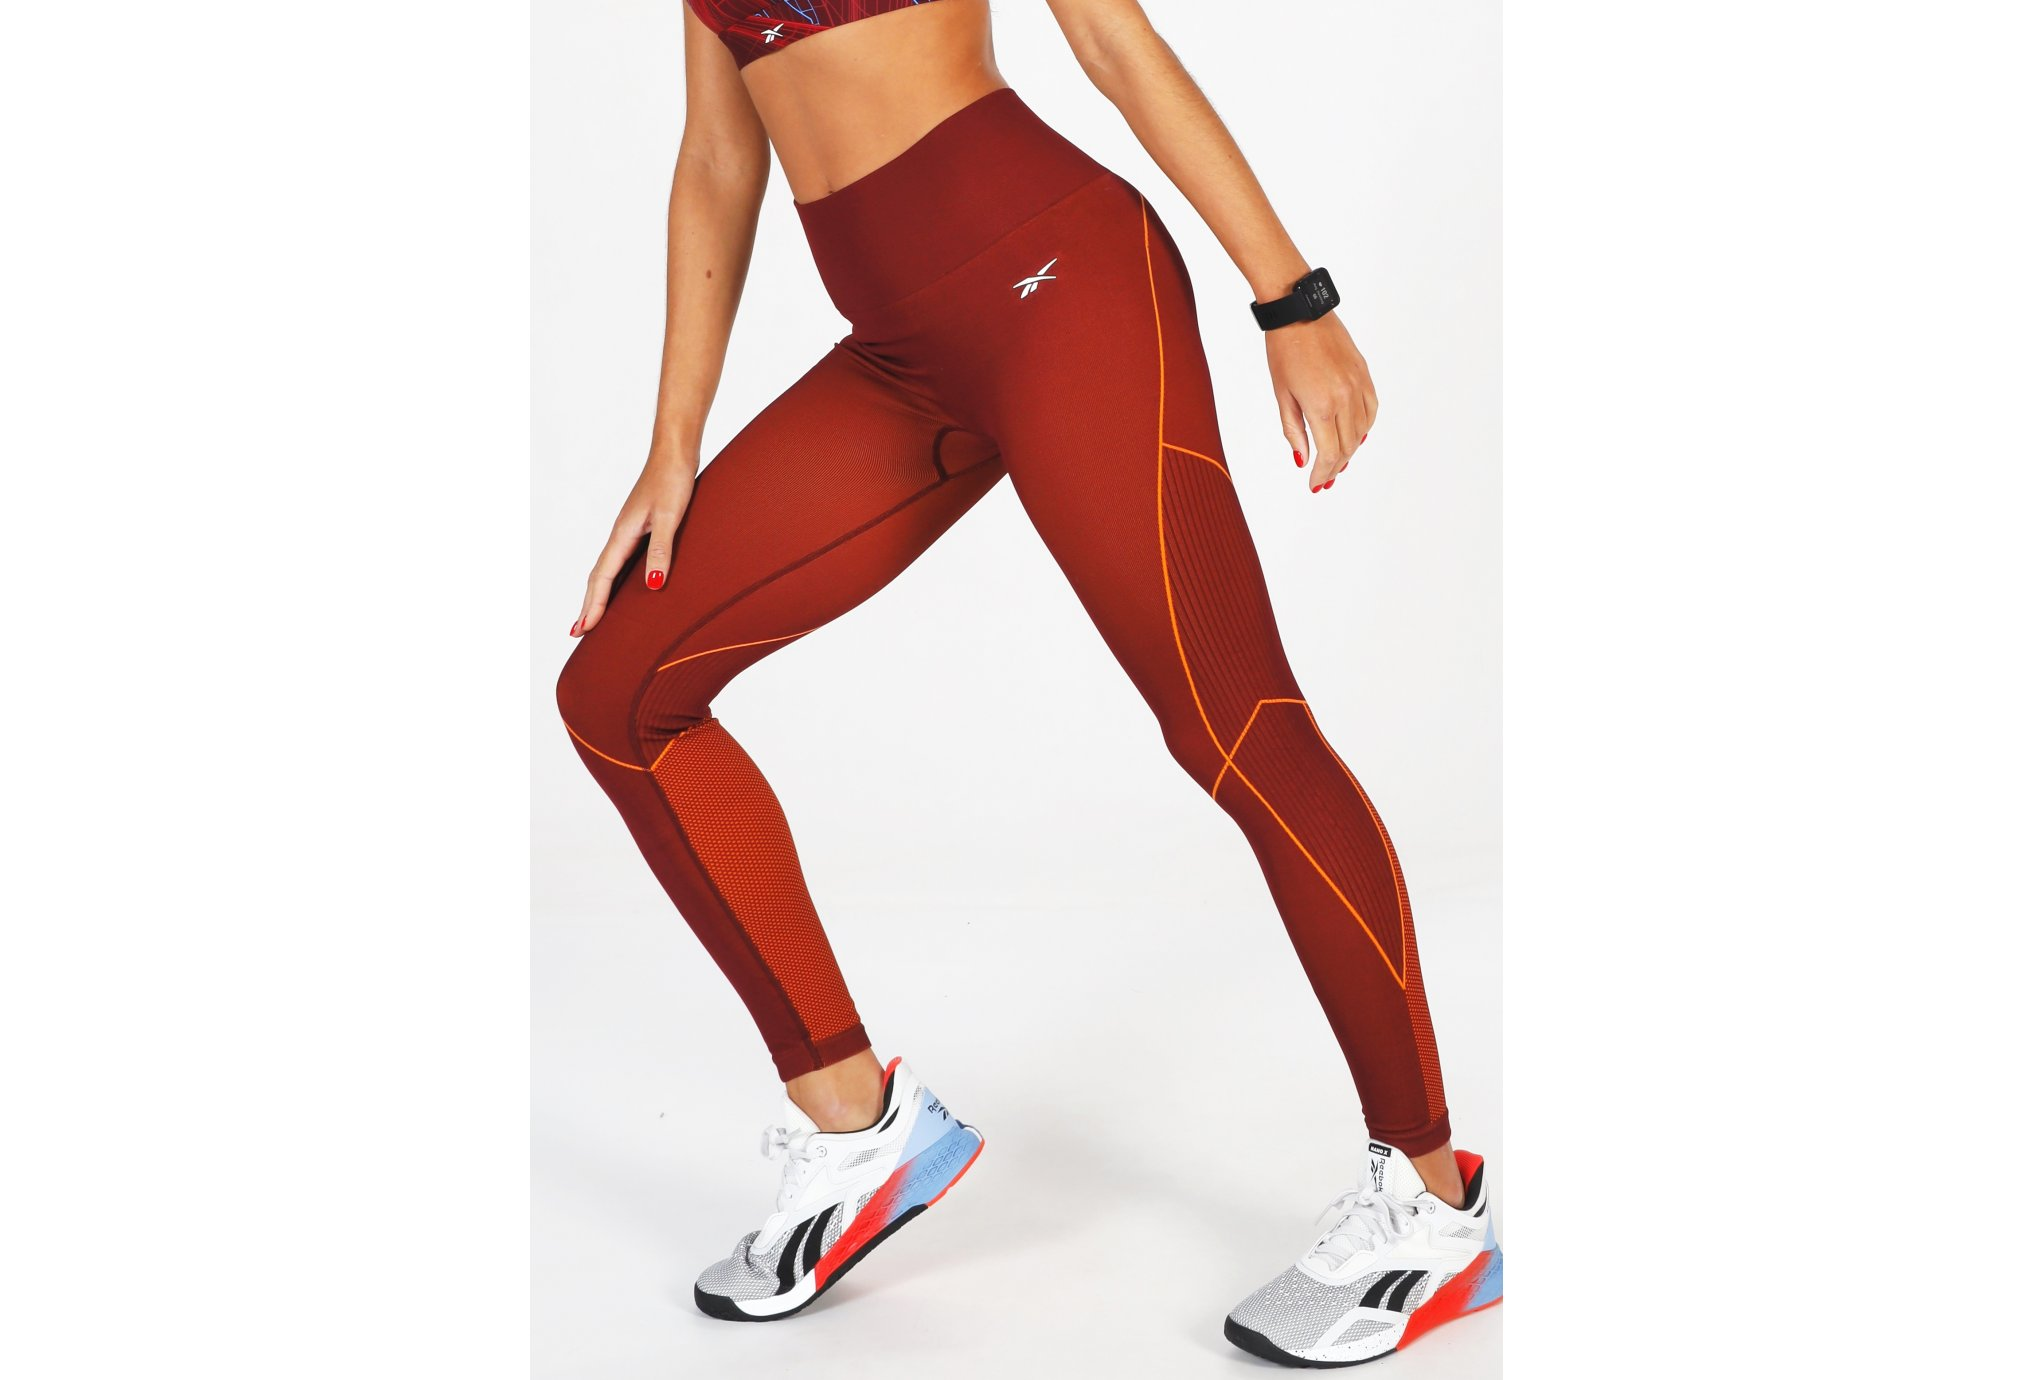 Reebok Workout MYT 7/8 W vêtement running femme